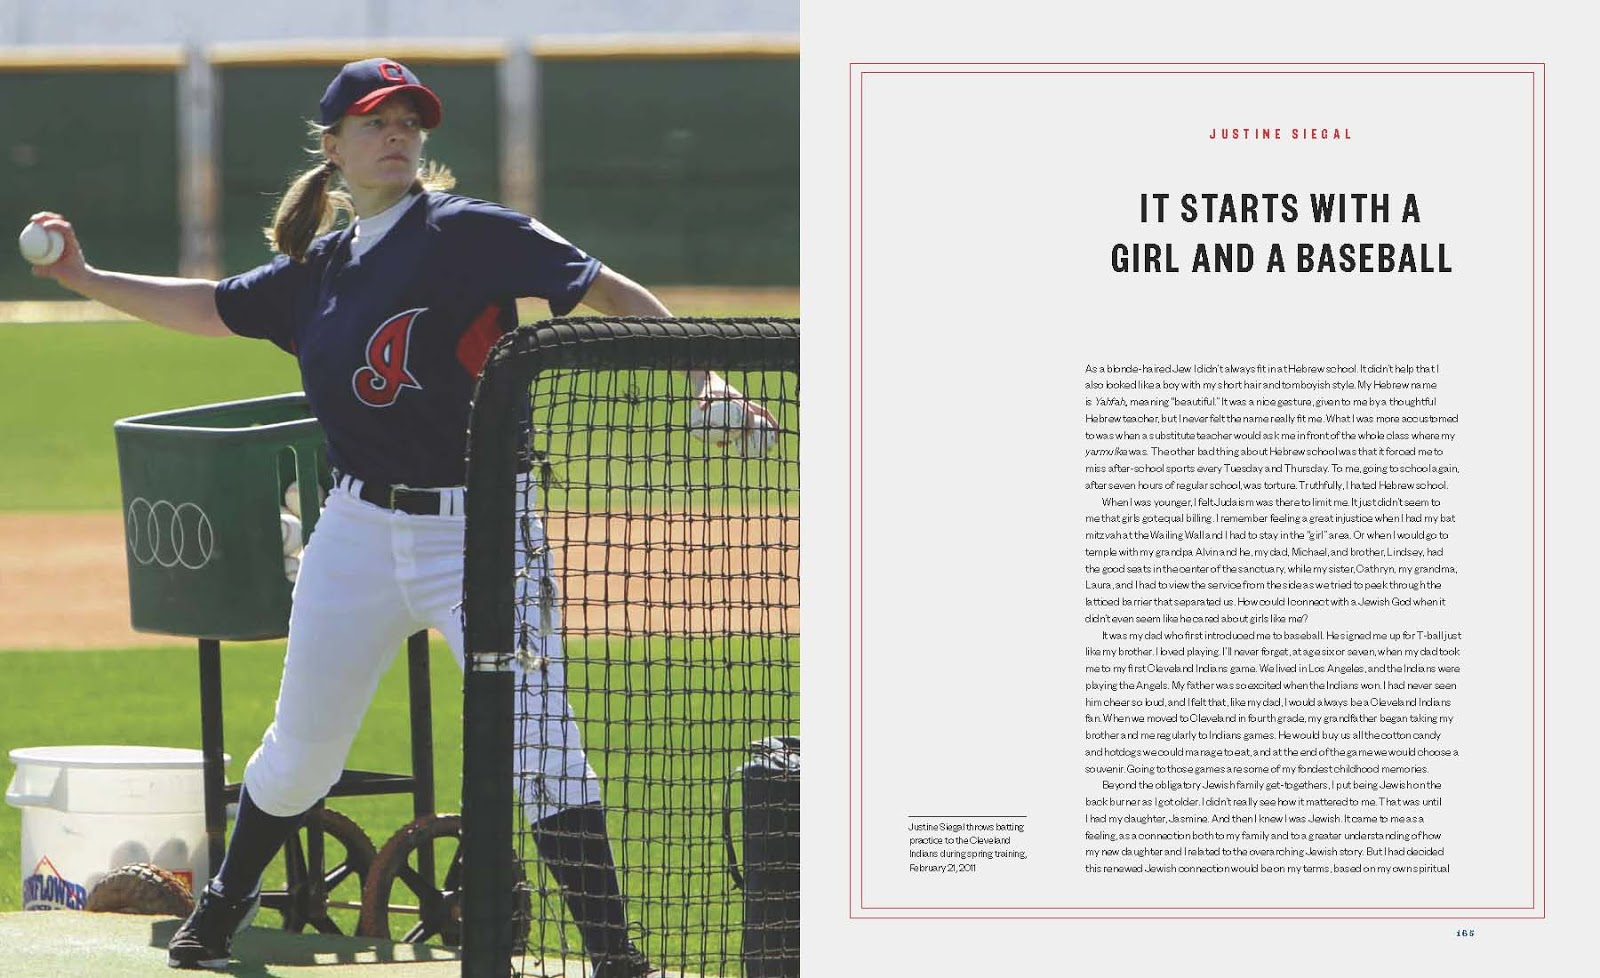 the great rabbino interview mlb s first female baseball coach i have a phd in sport psychology that i started what is now baseball for all at the young age of 23 i have attached an essay i wrote for chasing dreams